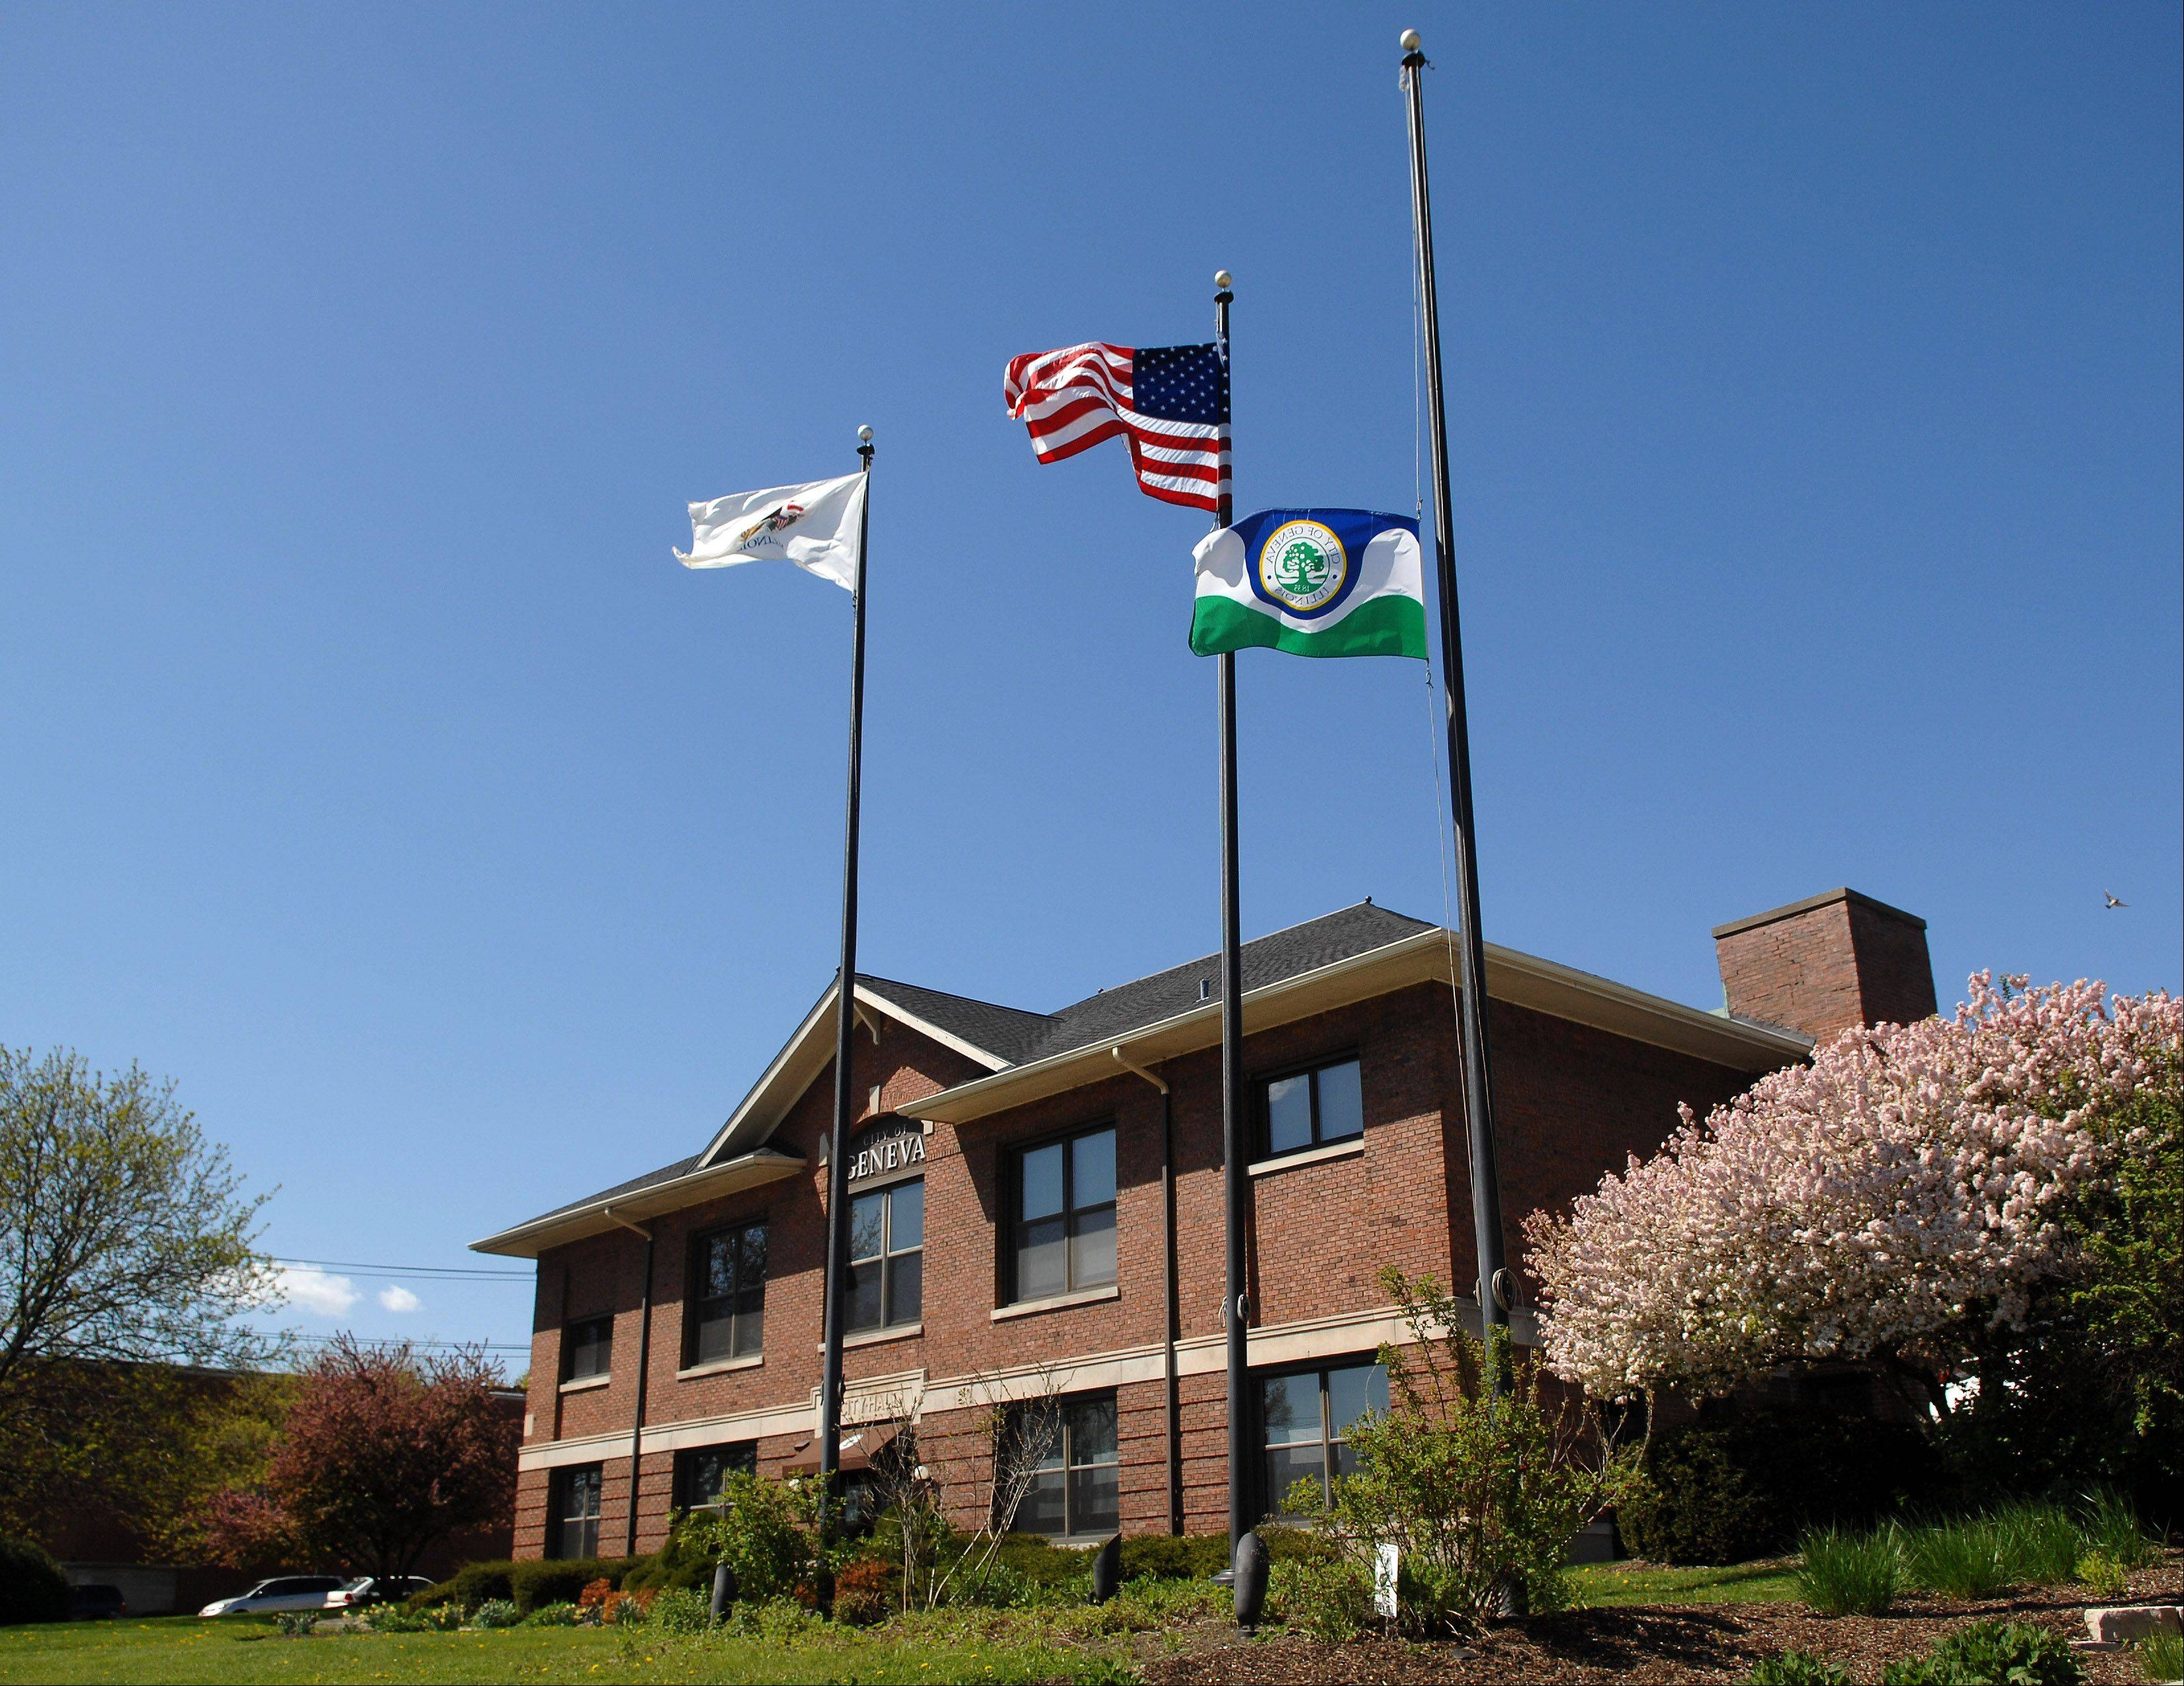 The city of Geneva flag flies at half-staff at city hall this week in honor of Mary Bencini, who died Saturday. Bencini was a 30-year teacher in town and very active in retirement with the city, schools and cultural arts. The flag was also at half-staff to honor the late alderman John VanThournout, who died April 6.